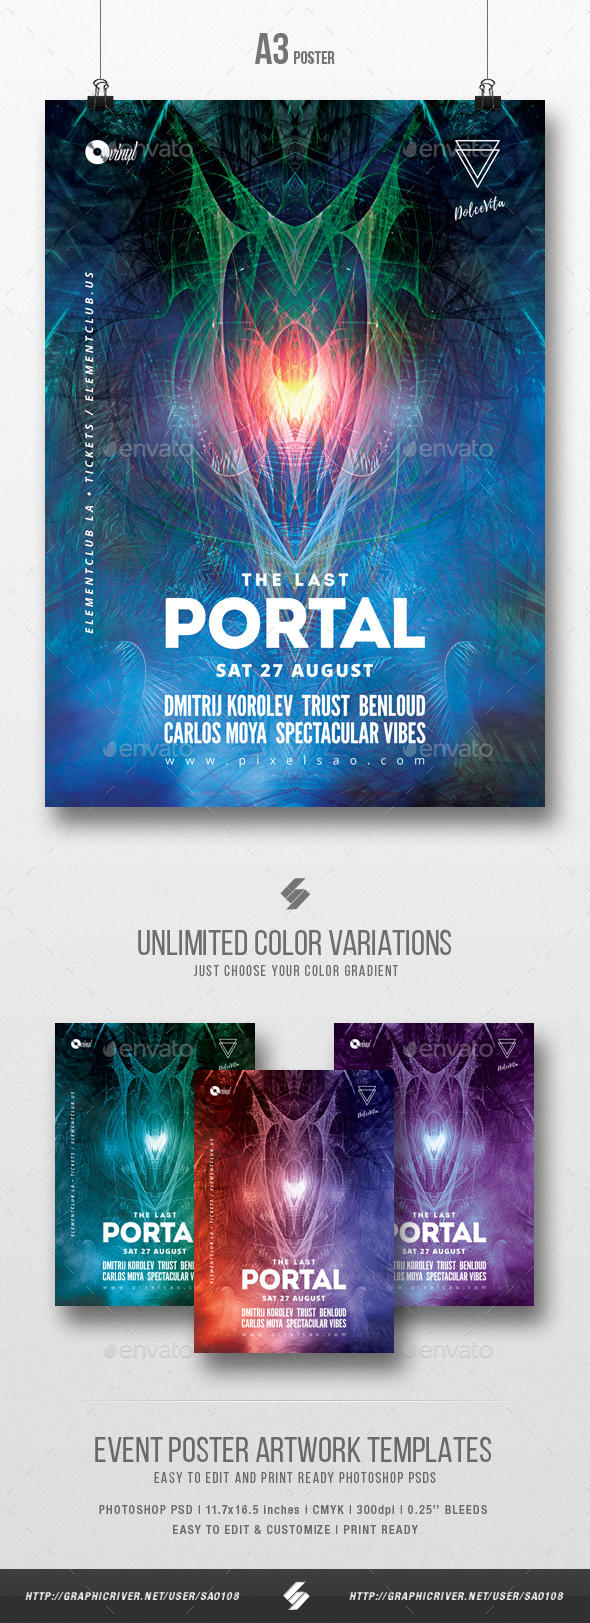 The Last Portal - Trance Party Flyer / Poster Template A3 - Clubs & Parties Events